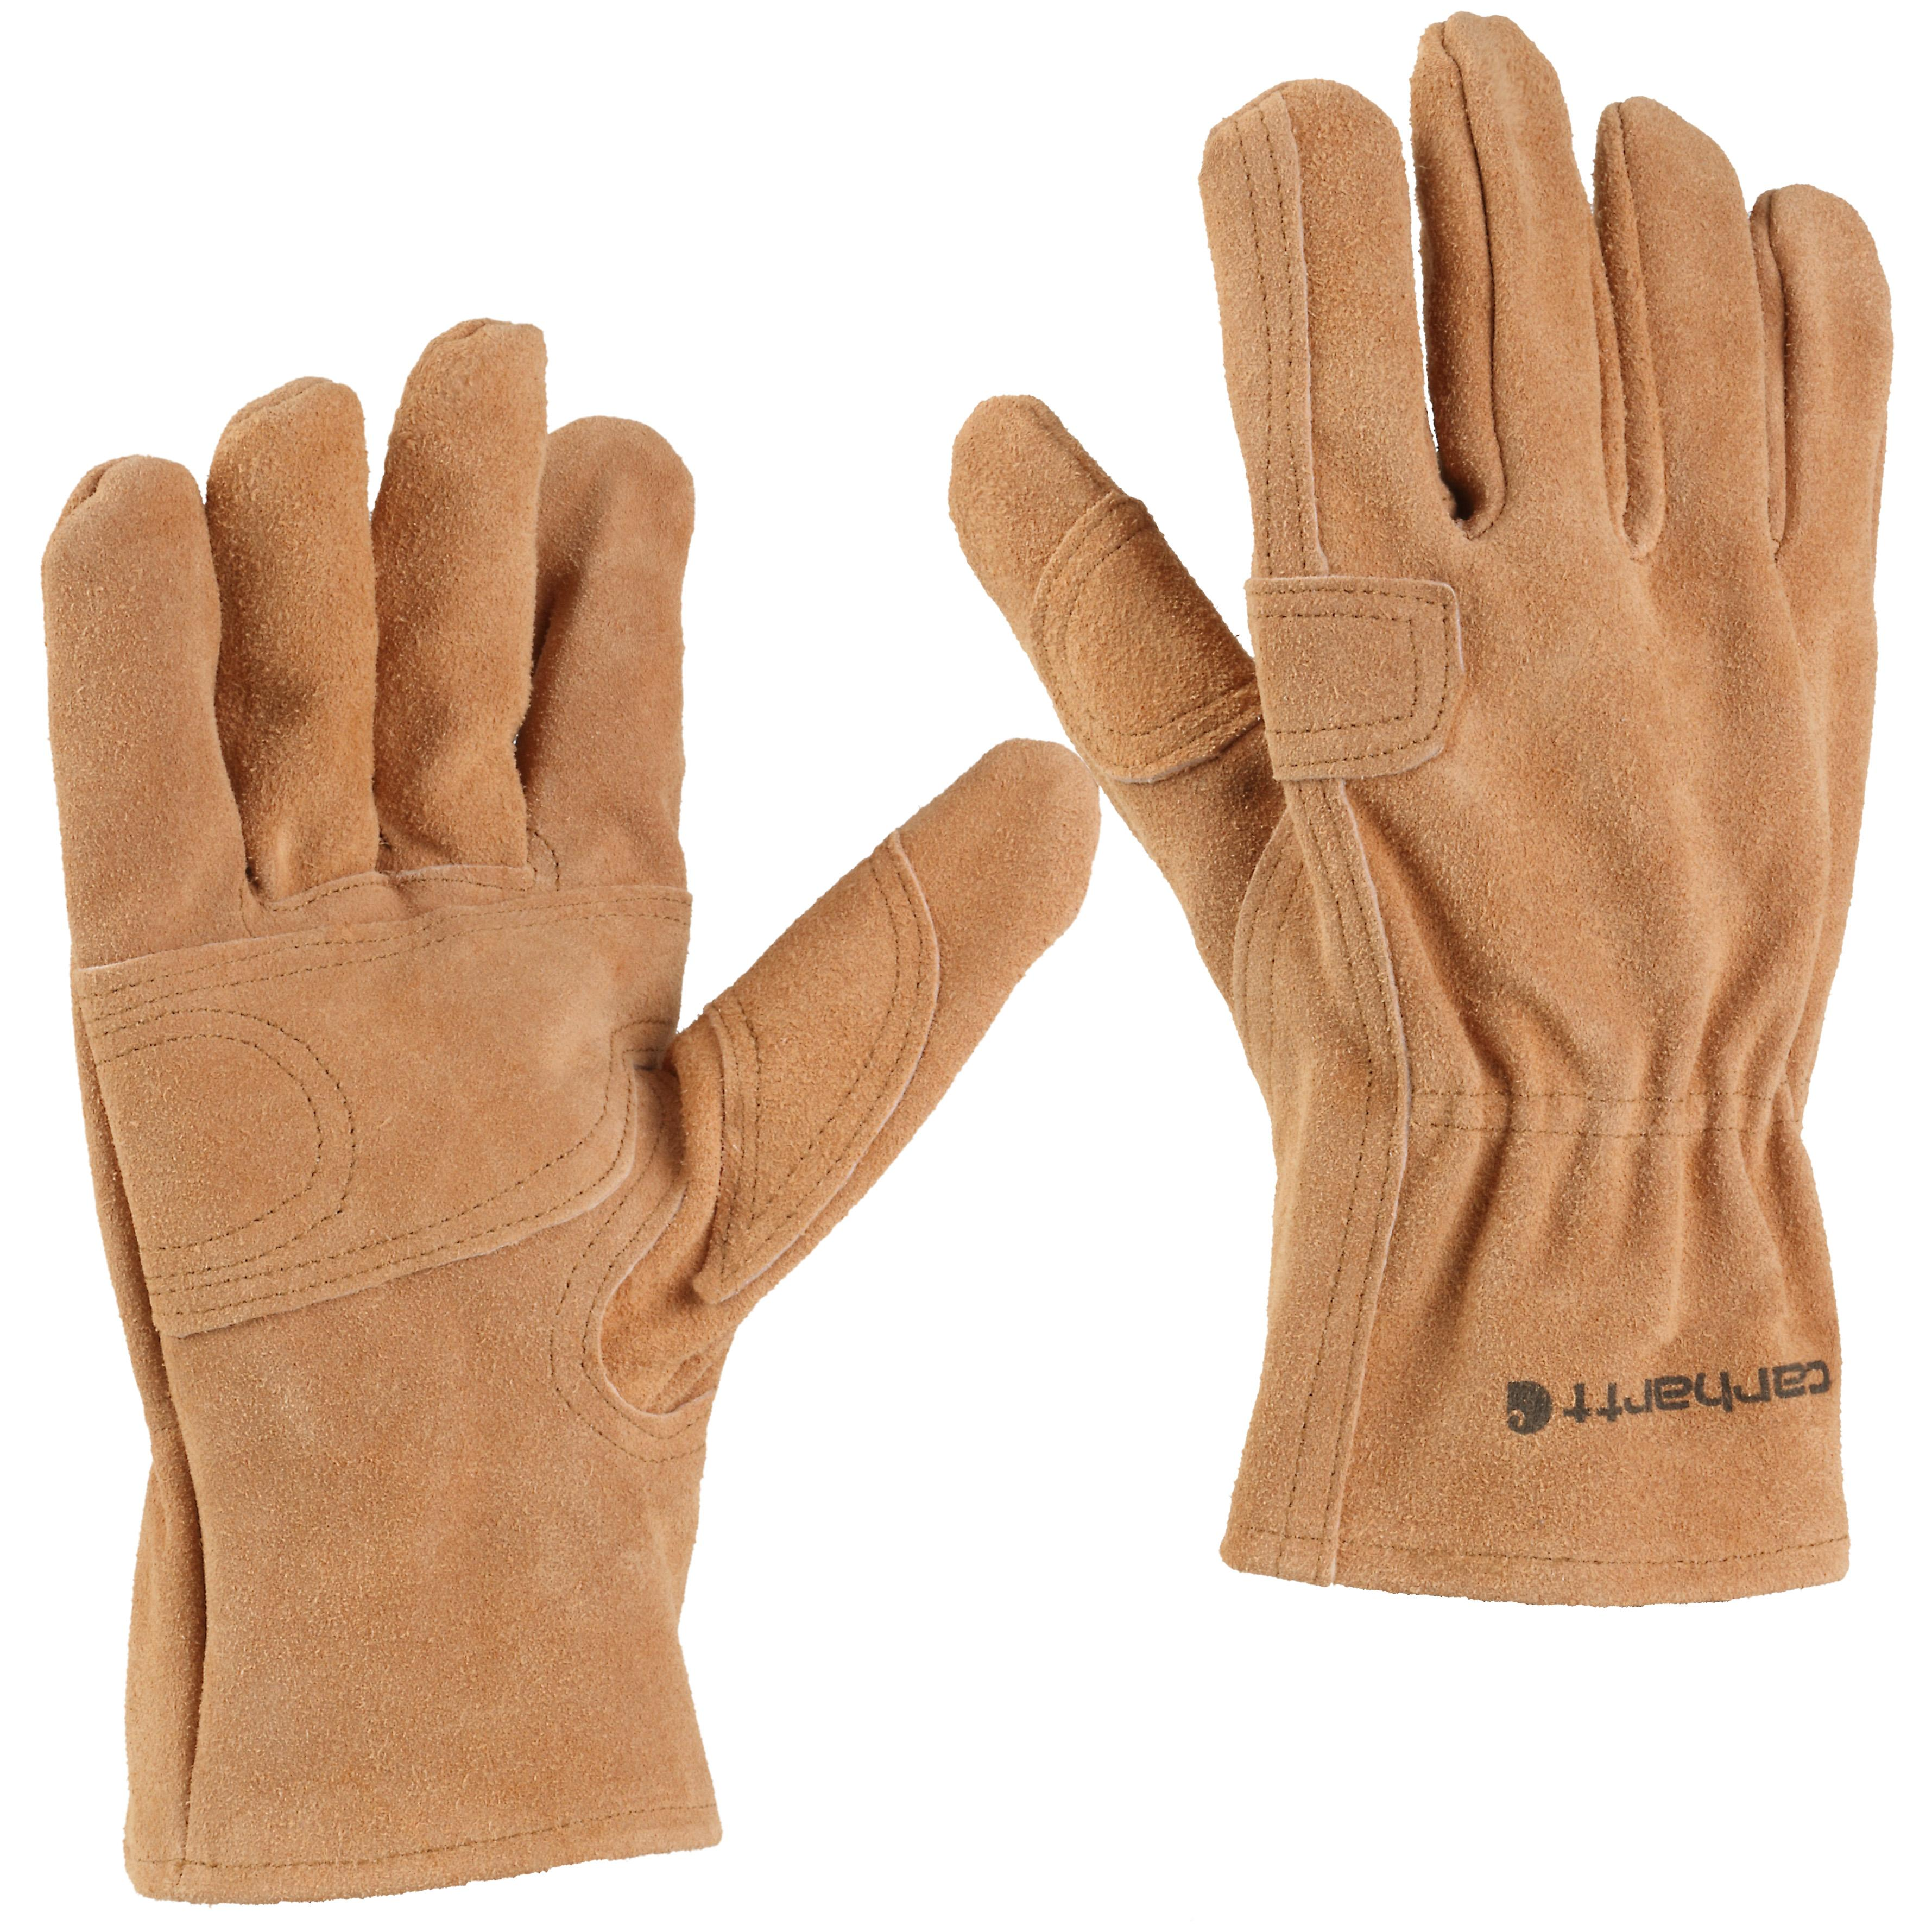 Leather work gloves best price - Leather Fencer Glove